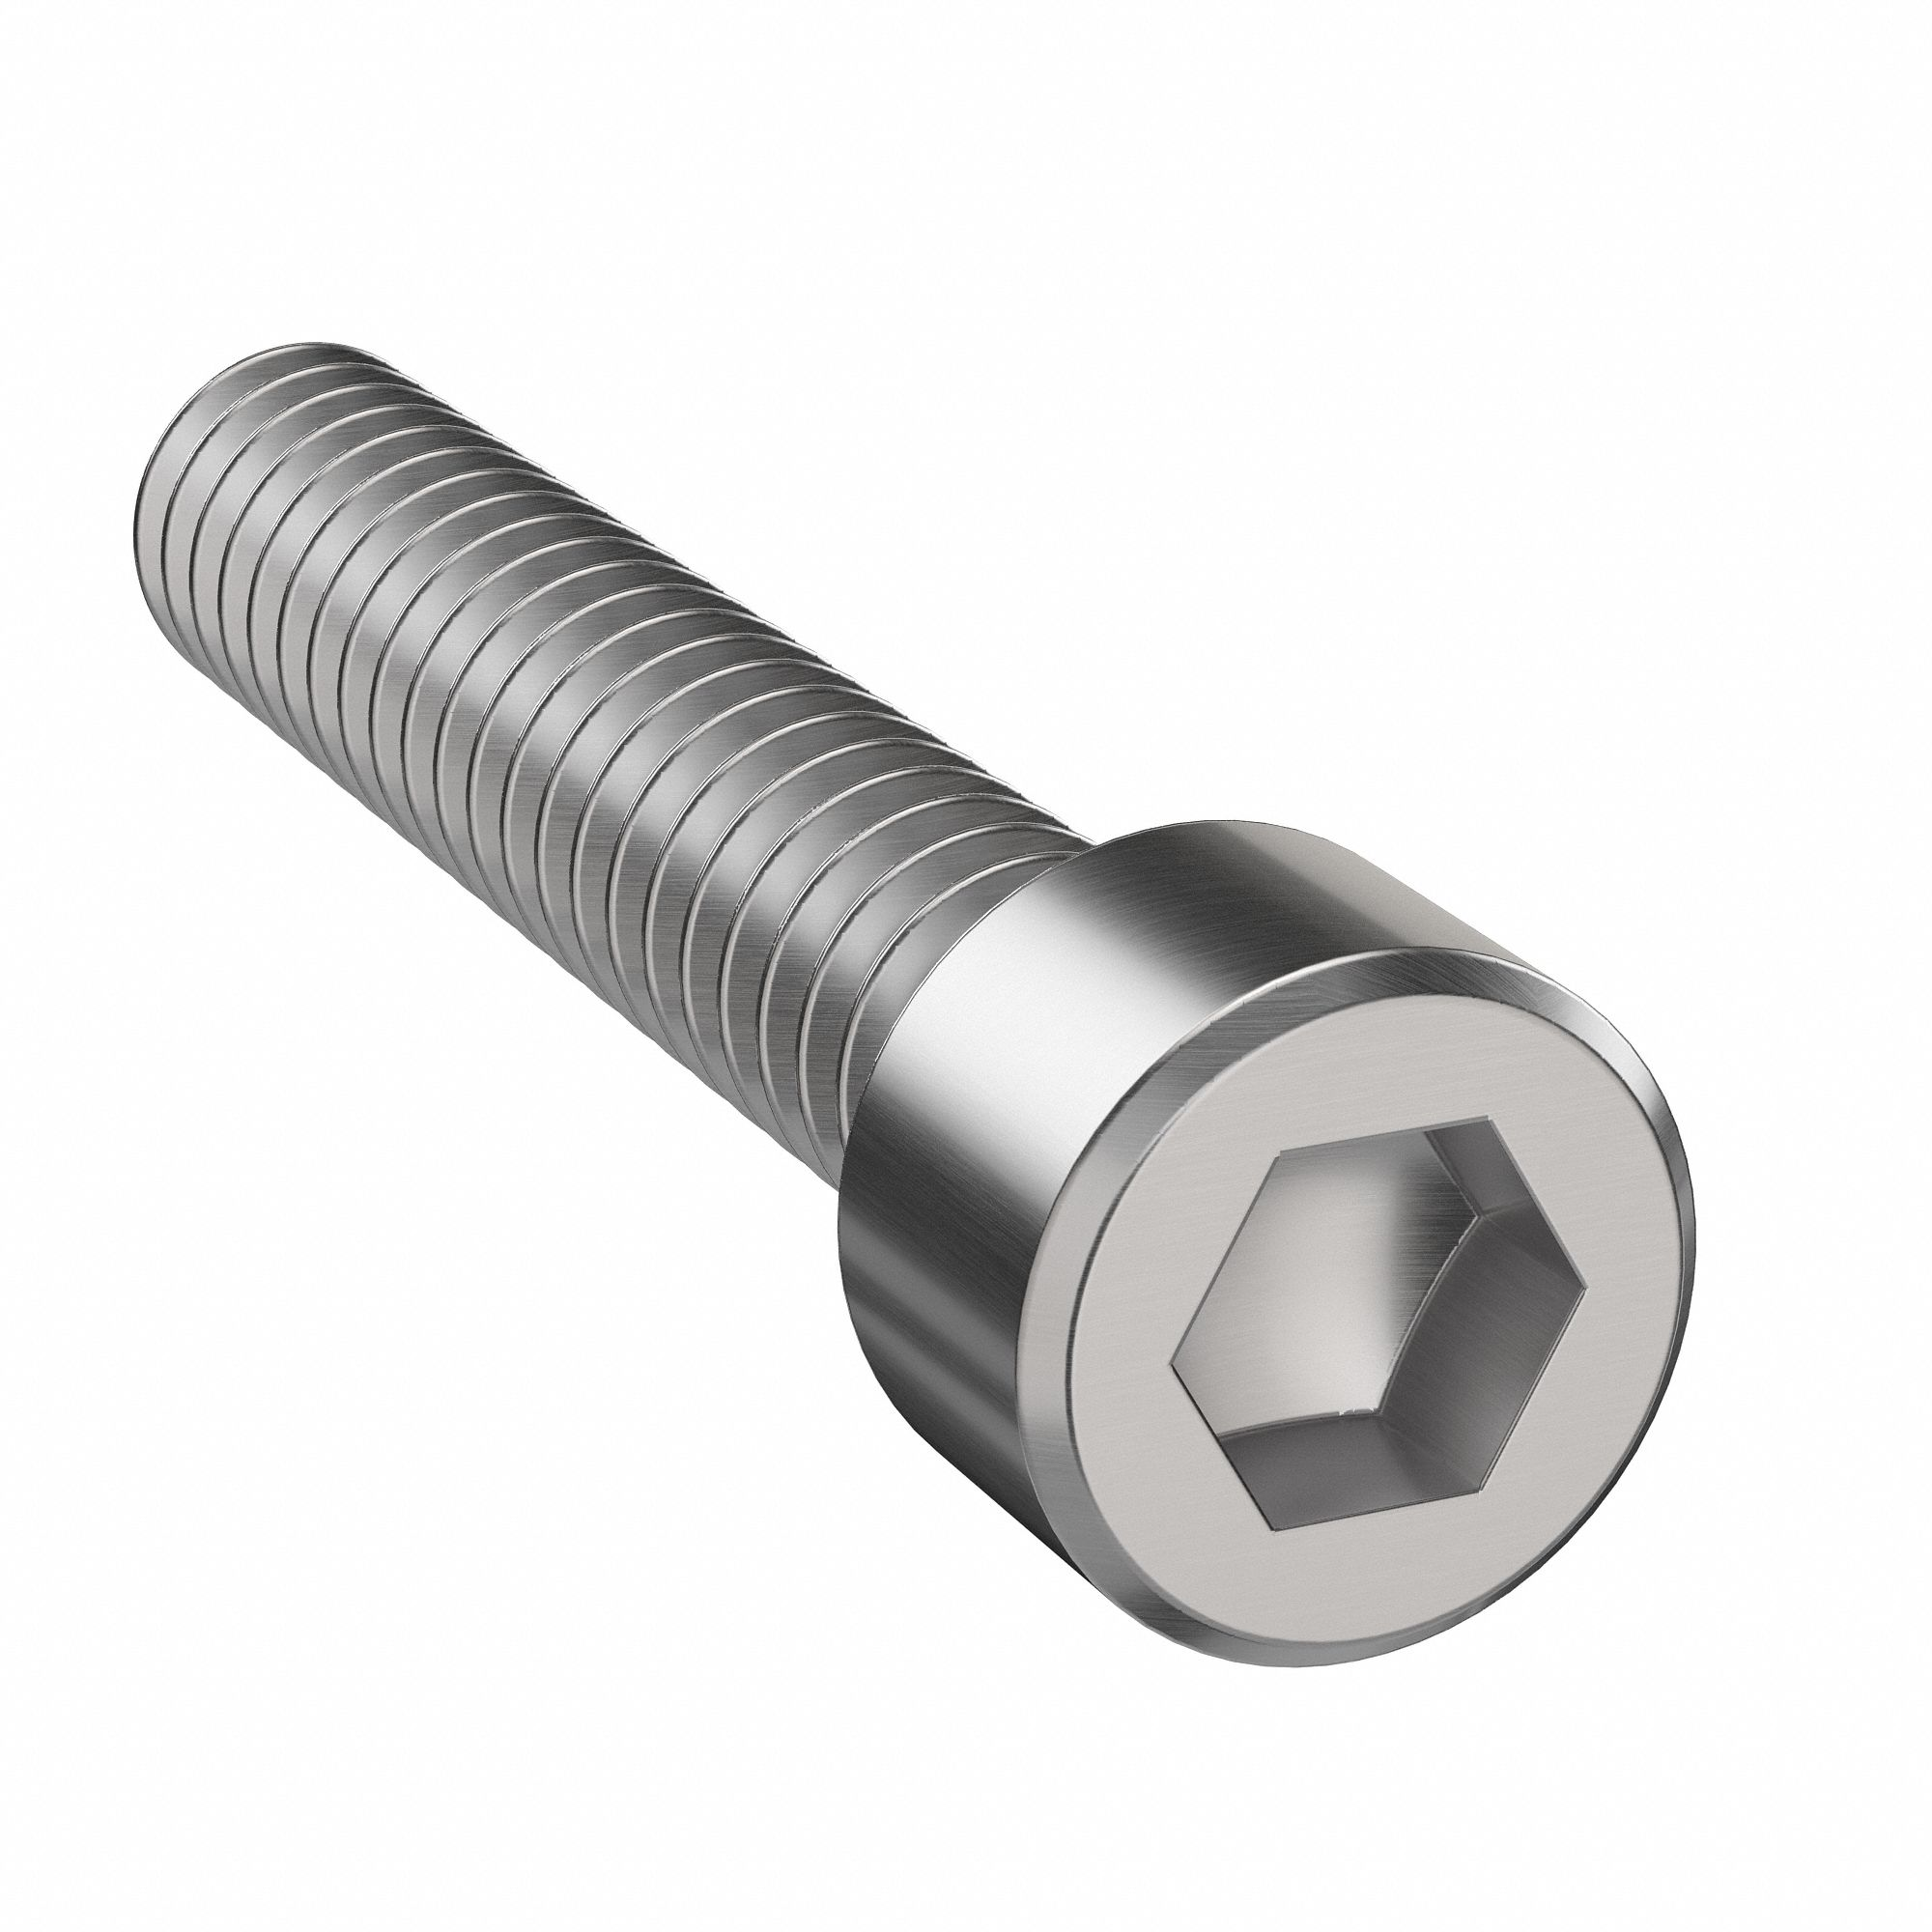 Flat Socket Cap Screws DIN 7991 and ISO 10642 18-8 Hex Socket Drive AISI 304 Stainless Steel Metric 150 pcs M3-0.5 X 10mm